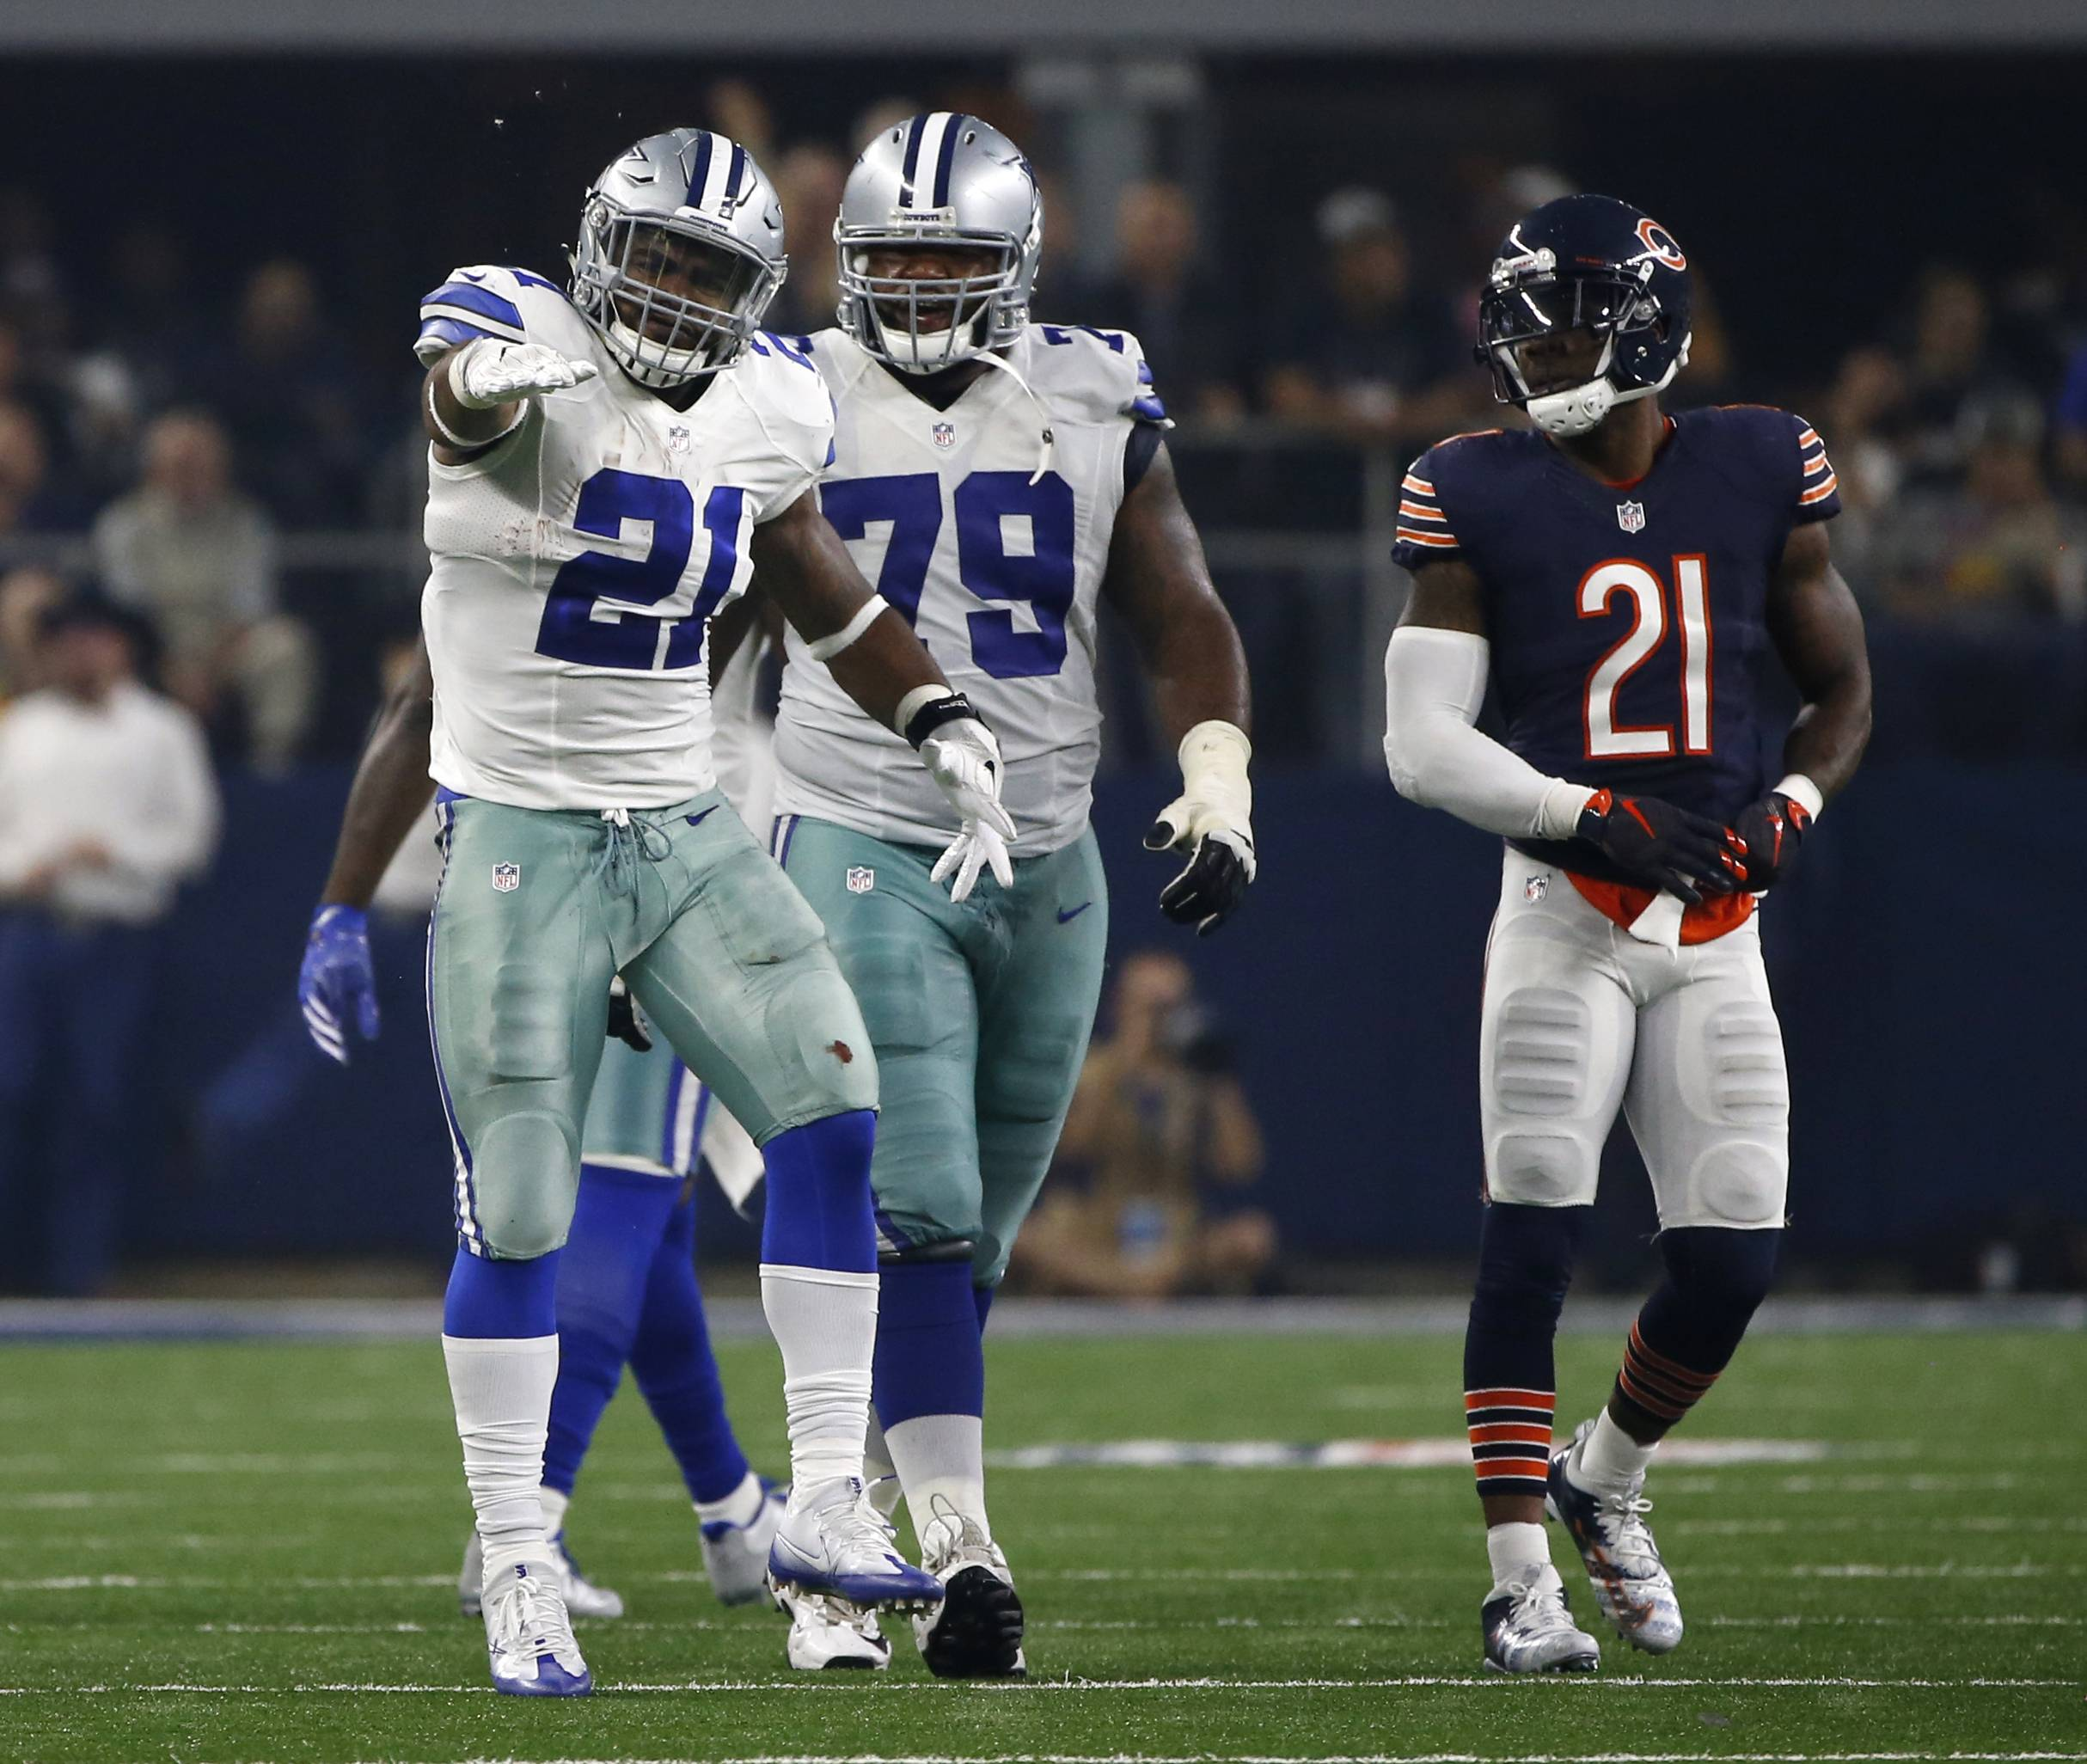 Dallas Cowboys running back Ezekiel Elliott (21) and Chaz Green (79) celebrate a run for first down by Elliott as Chicago Bears cornerback Tracy Porter (21) watches in the second half of an NFL football game, Sunday, Sept. 25, 2016, in Arlington, Texas. (AP Photo/Ron Jenkins)